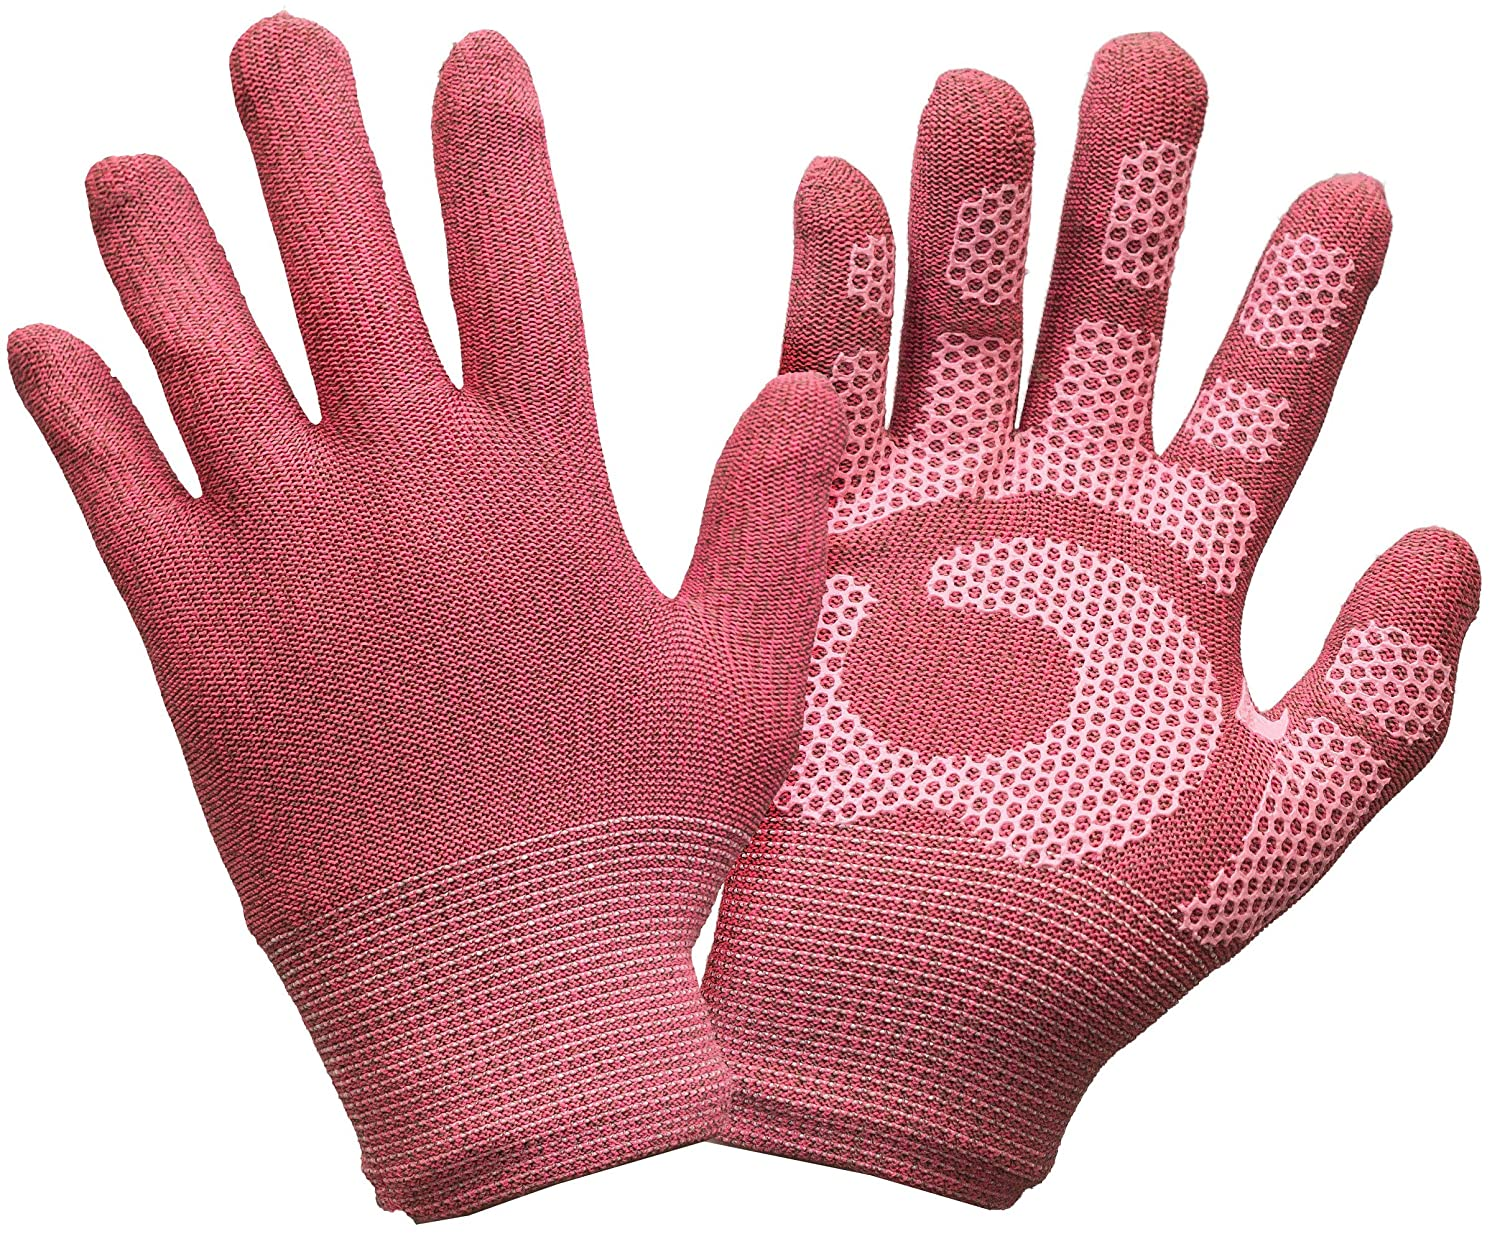 b67db89735 GliderGloves Copper Infused Touch Screen Gloves - Entire Surface Works on  iPhones, Androids, Ipads, Tablets - Anti Slip Palm for Driving & Phone Grip  ...